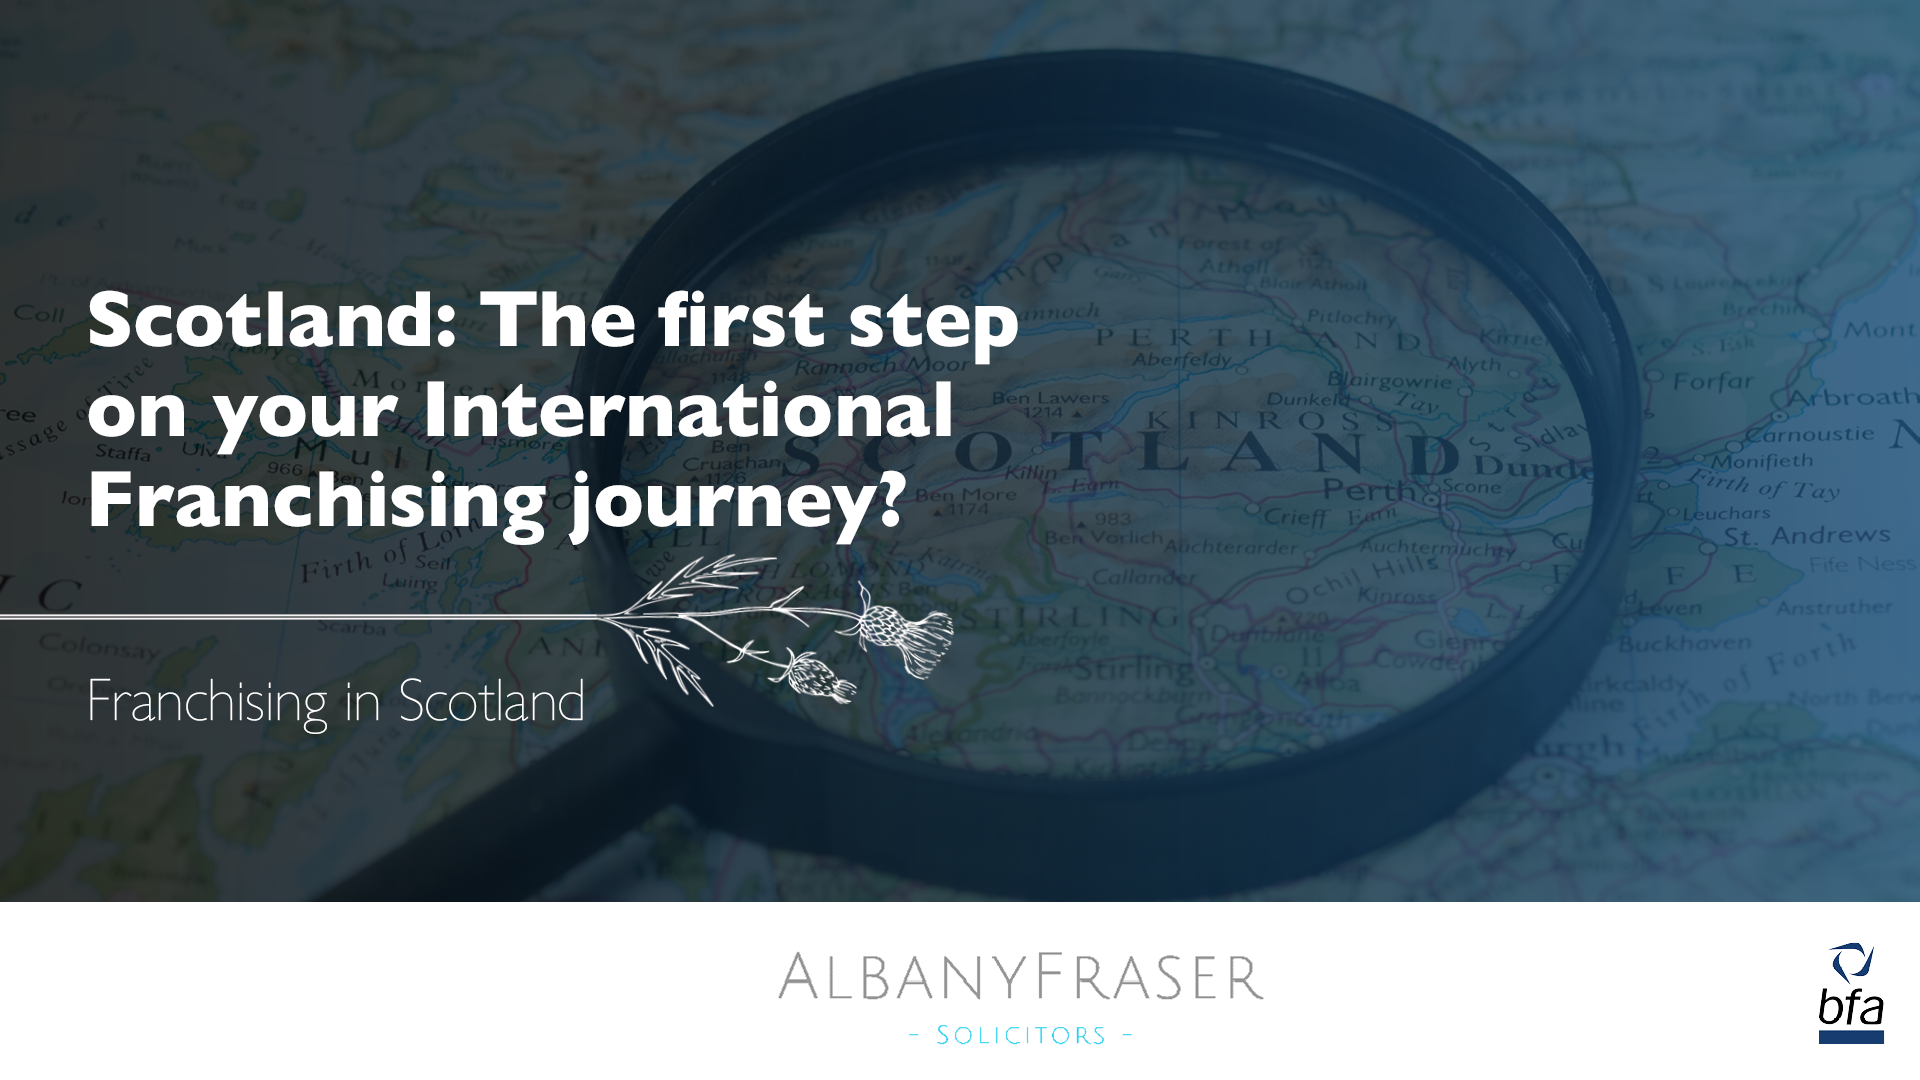 Scotland: The first step on your International Franchising journey?